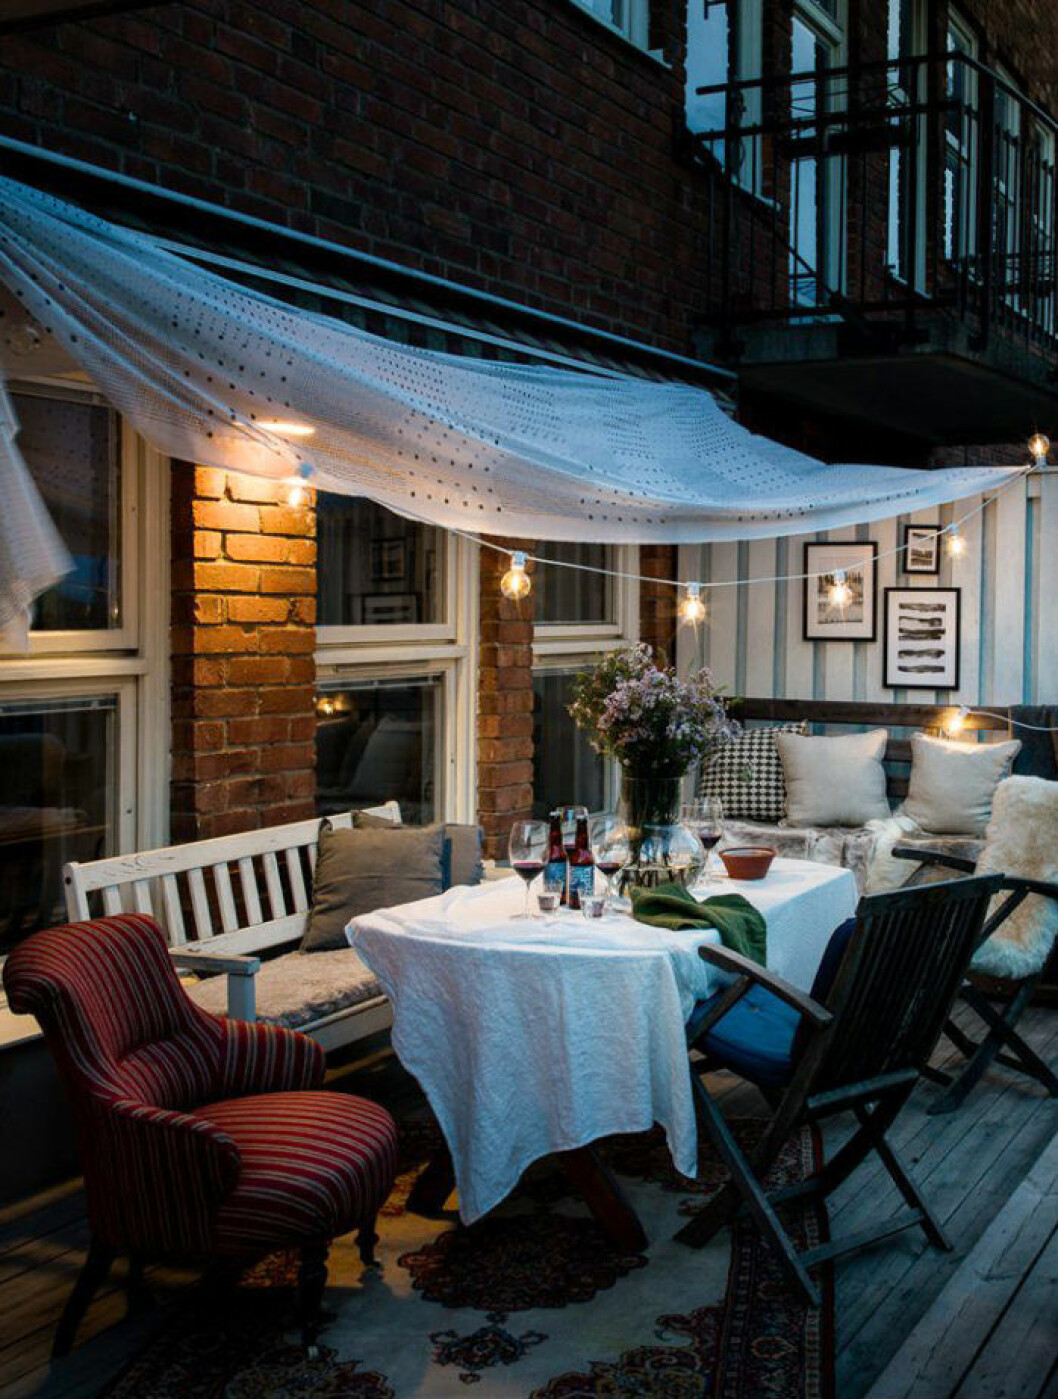 Scandinavian patio with decoration and lights.